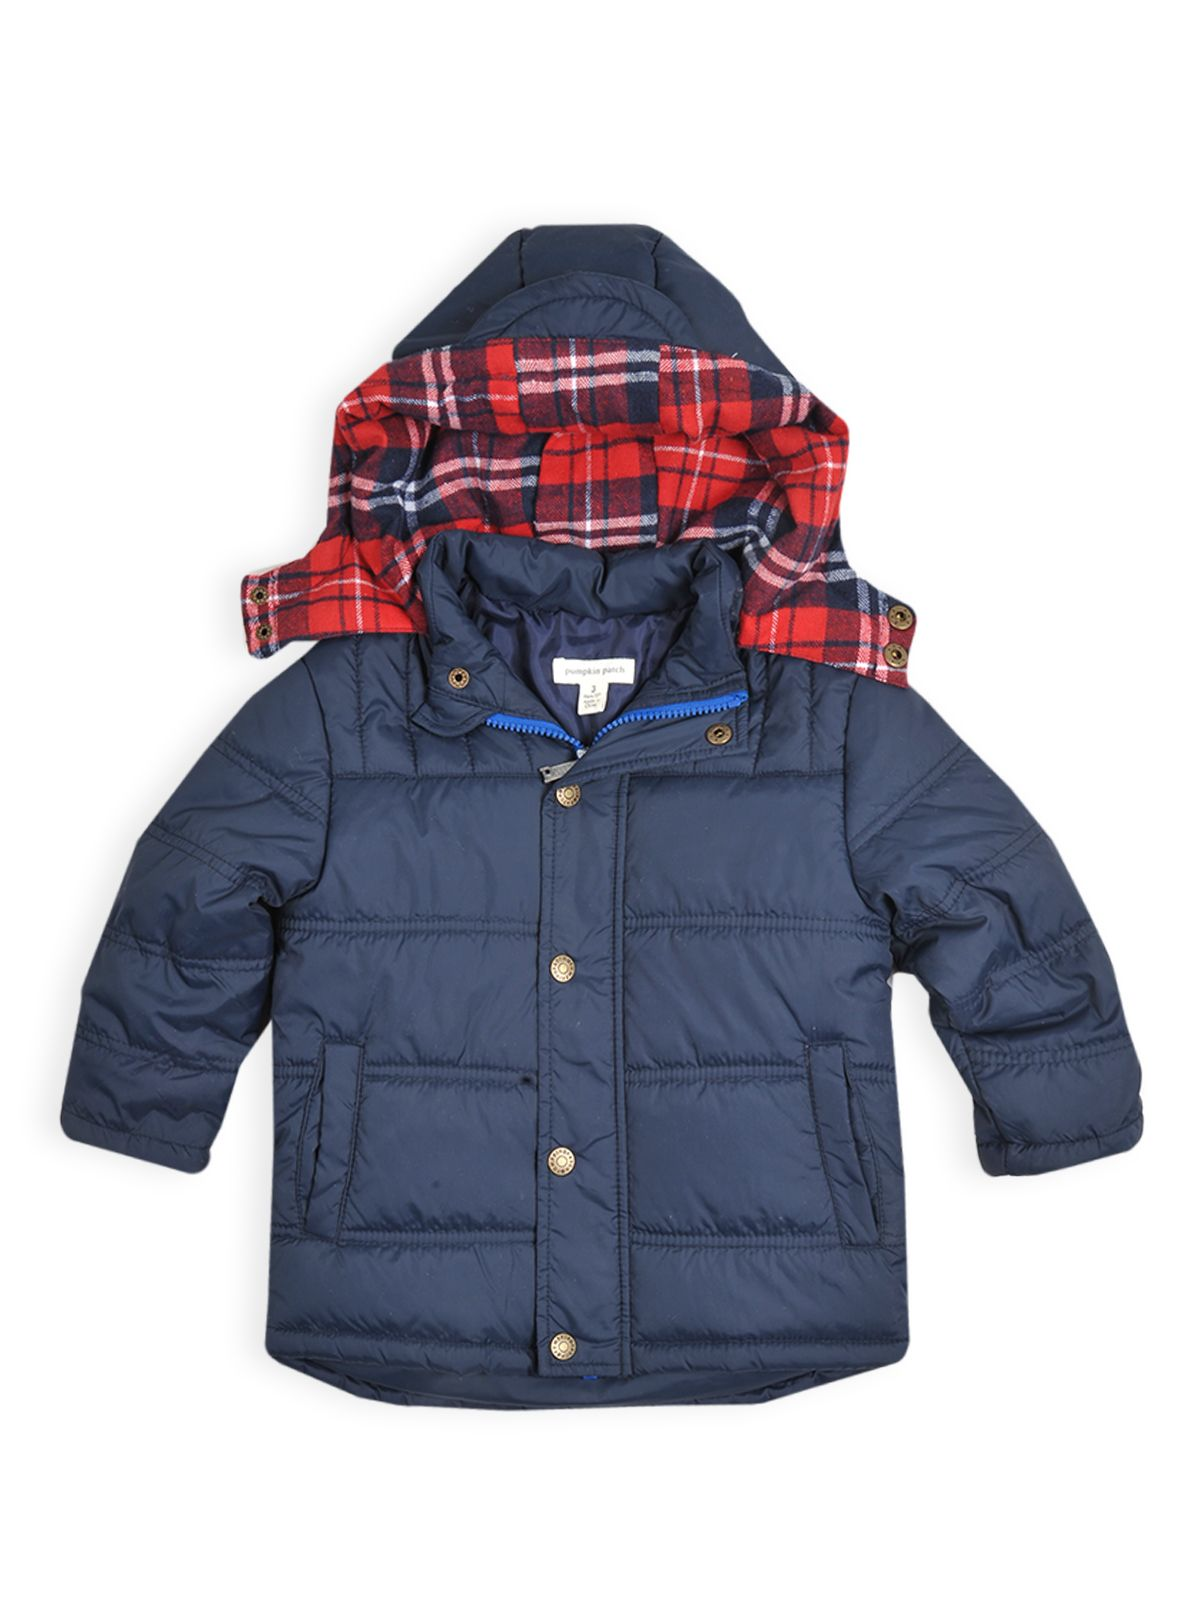 Boys hooded jacket with check lining